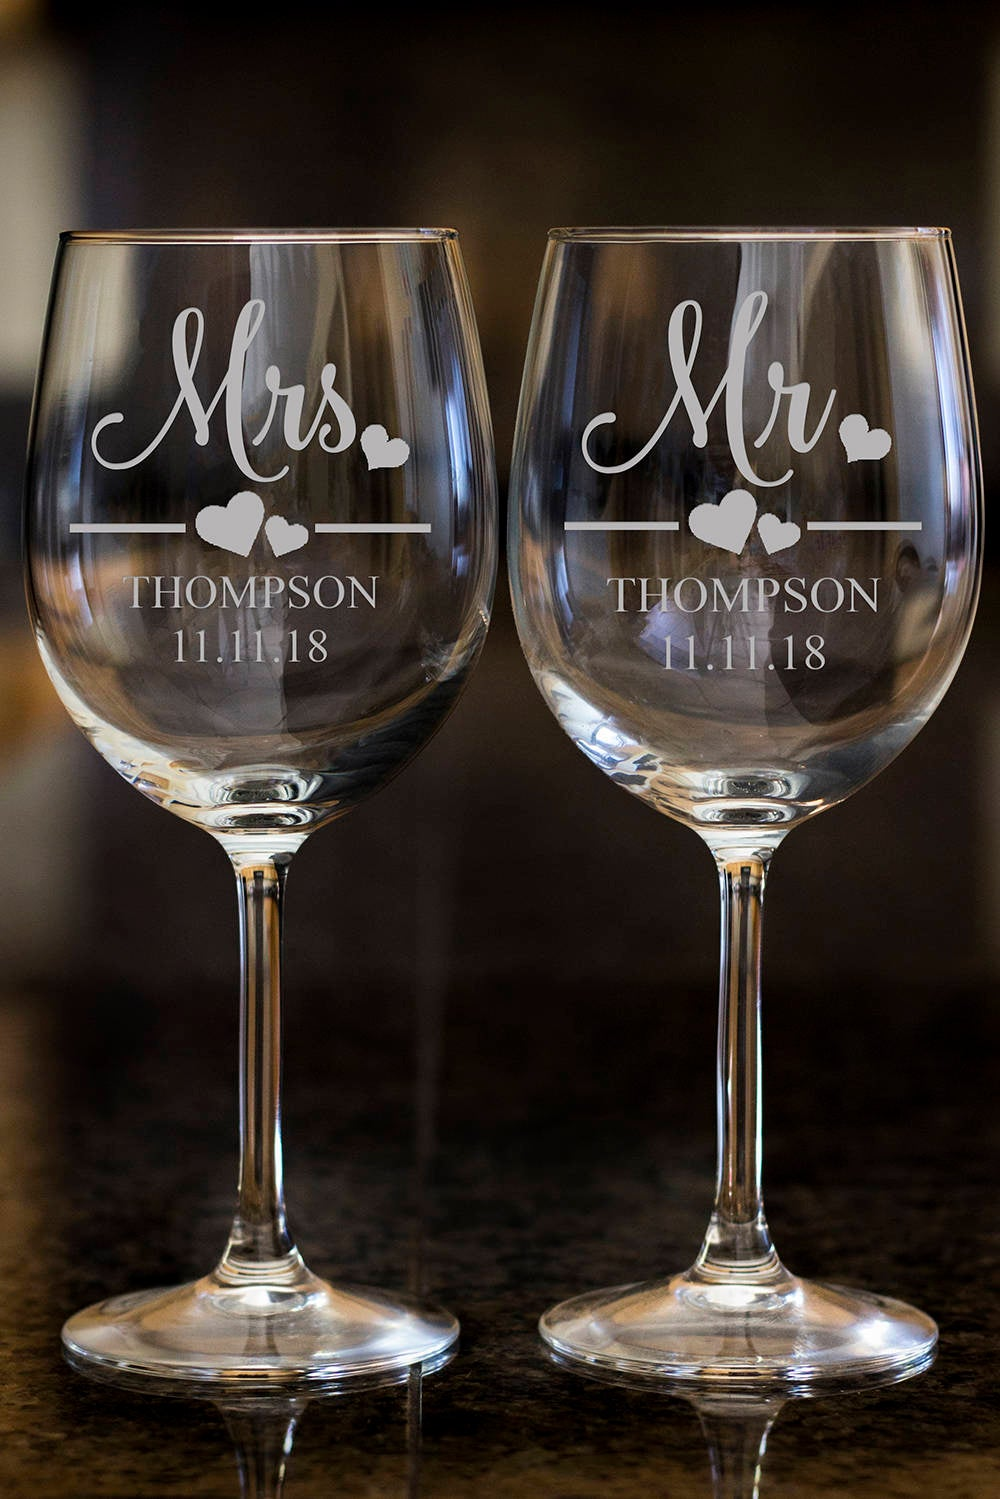 Mrs. wine glasses,Personalize wine glasses,Engraved wine glasses, etched Wine glasses,wedding gift, Bachelor party, customized family name